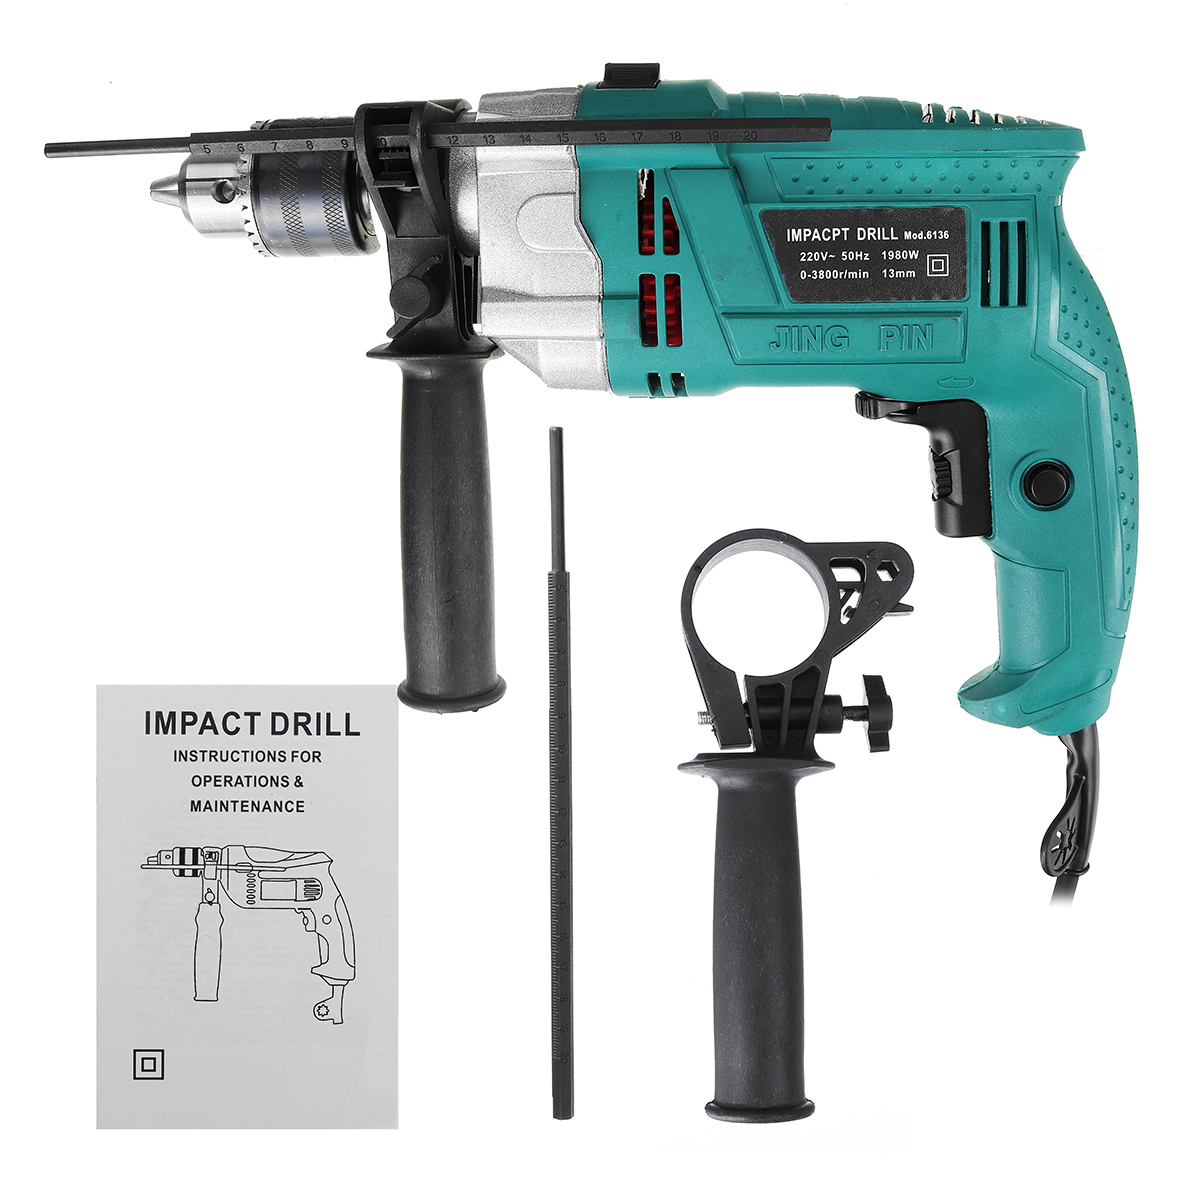 Bar 1980W Handheld Scale Drill Kit Drillpro Handle 3800rpm Impact Electric Multifunction Flat  Wrench Hammer 220V Drill  Rotary